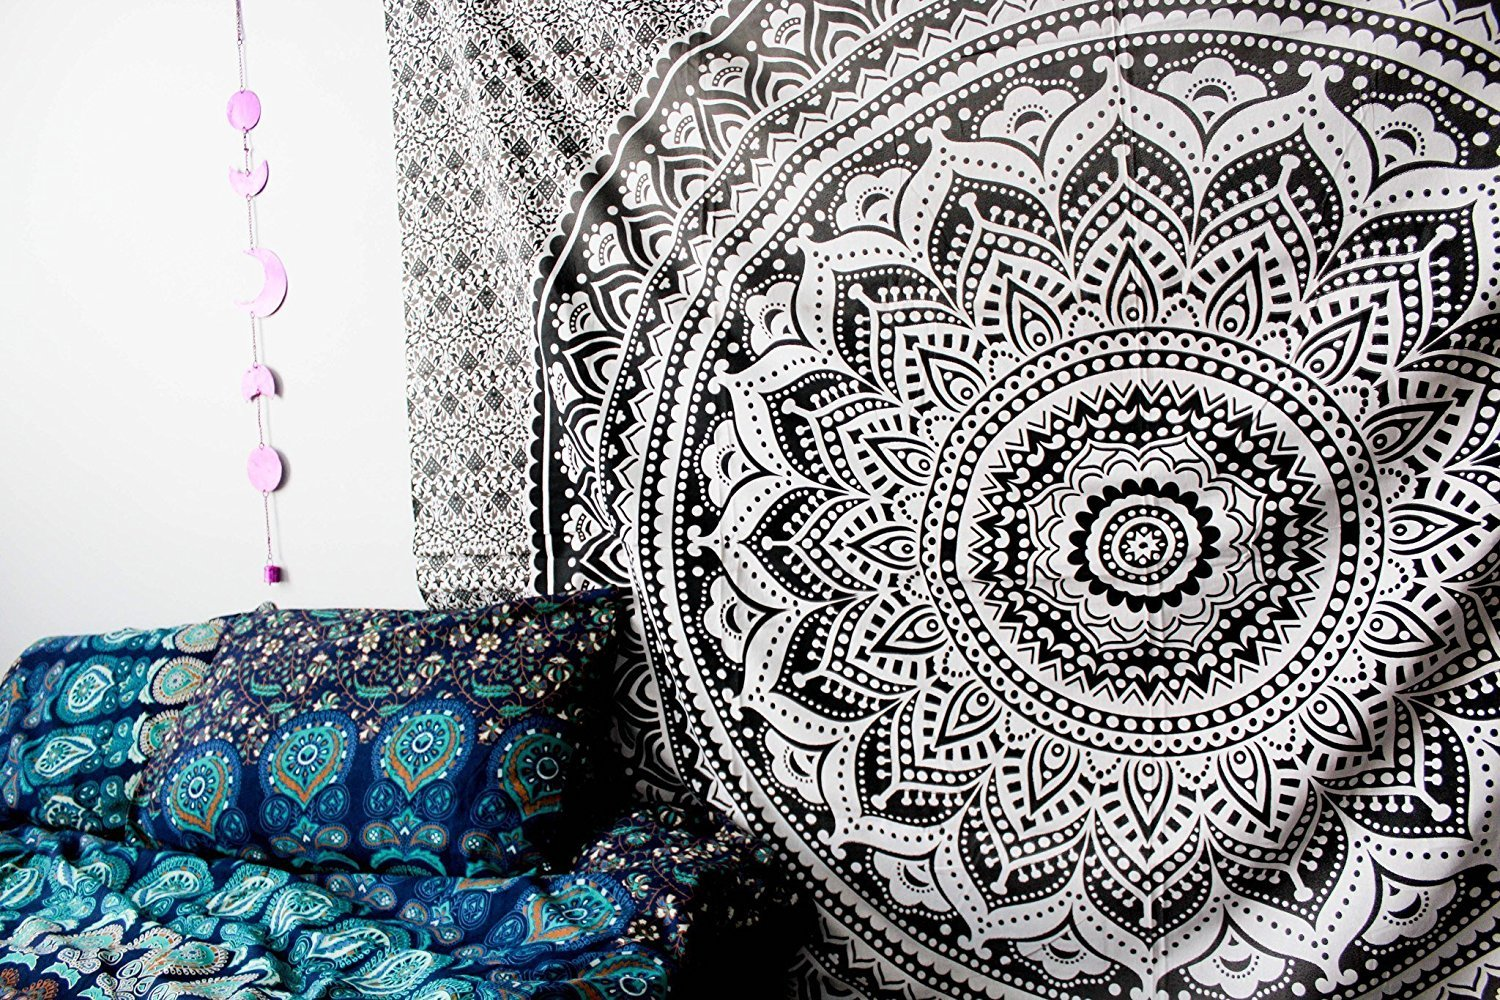 Popular Handicrafts Large Tapestry wall hangings Hippy Ombre Mandala Bohemian Tapestries, Indian Dorm Decor, Psychedelic Tapestry Wall Hanging Ethnic Decorative Tapestry (84x90 inches) (Black grey)